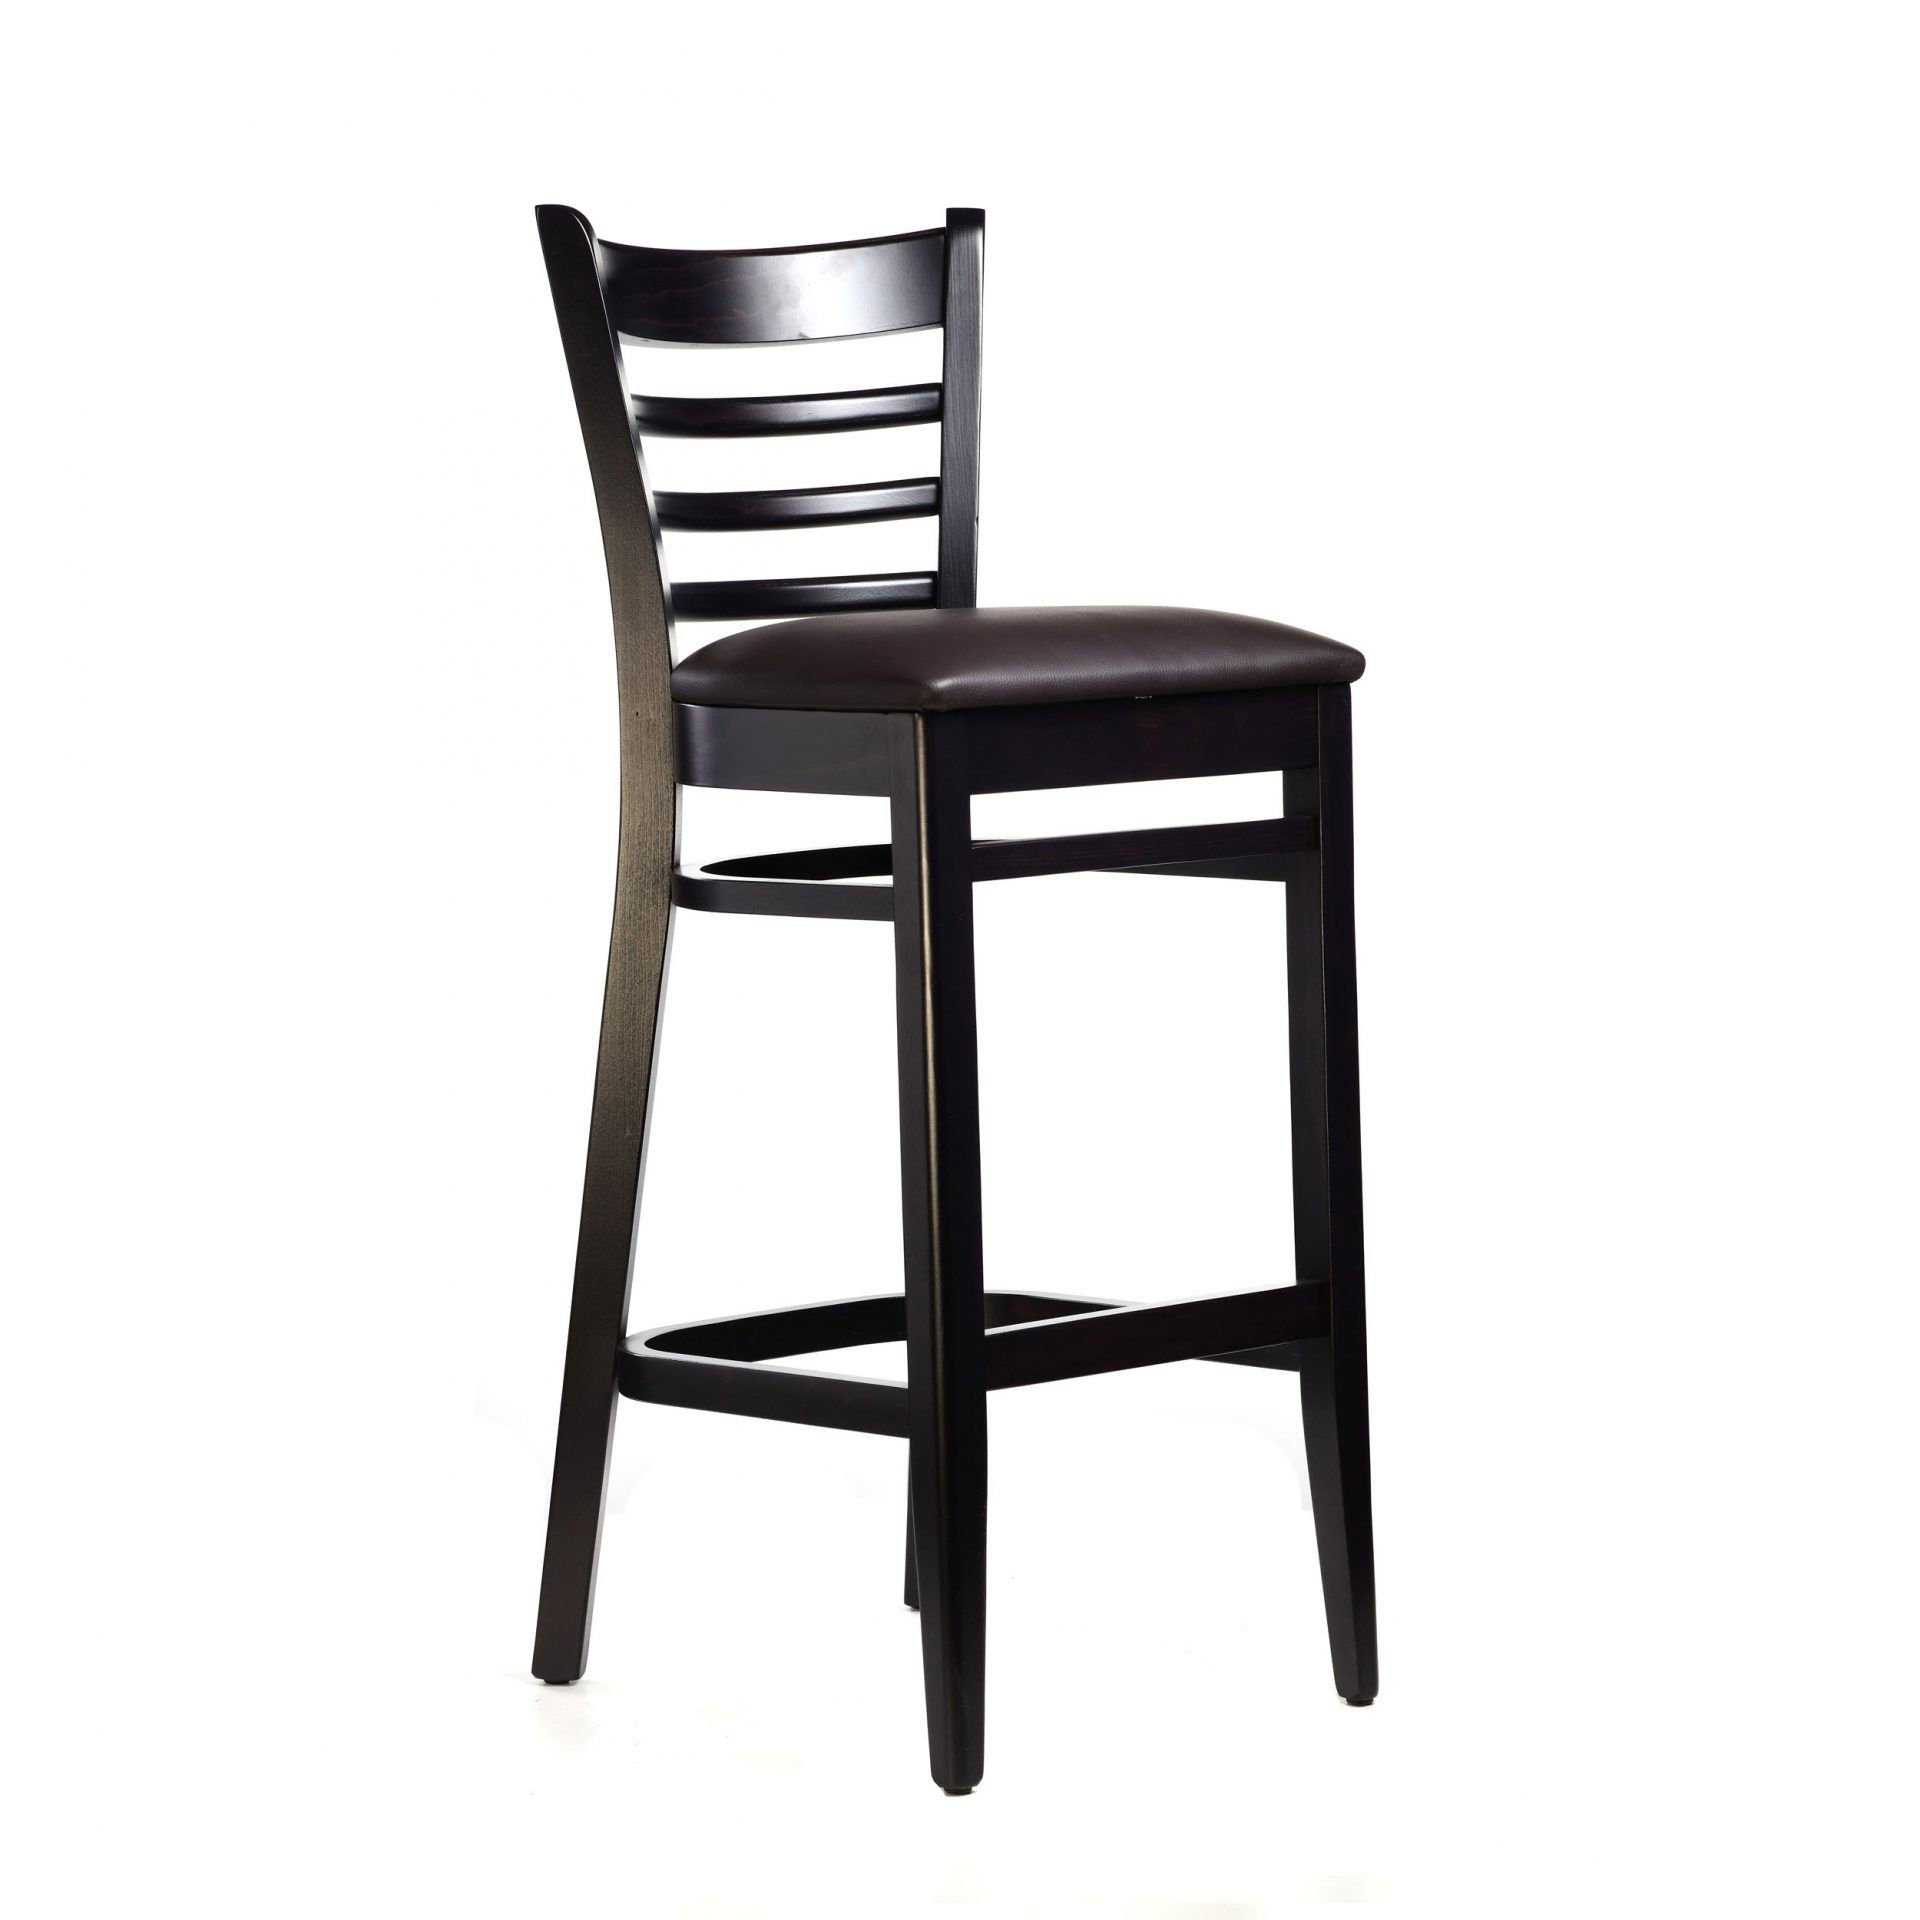 Florence Barstool Chocolate - Vinyl Seat (Choc) - Made in Europe